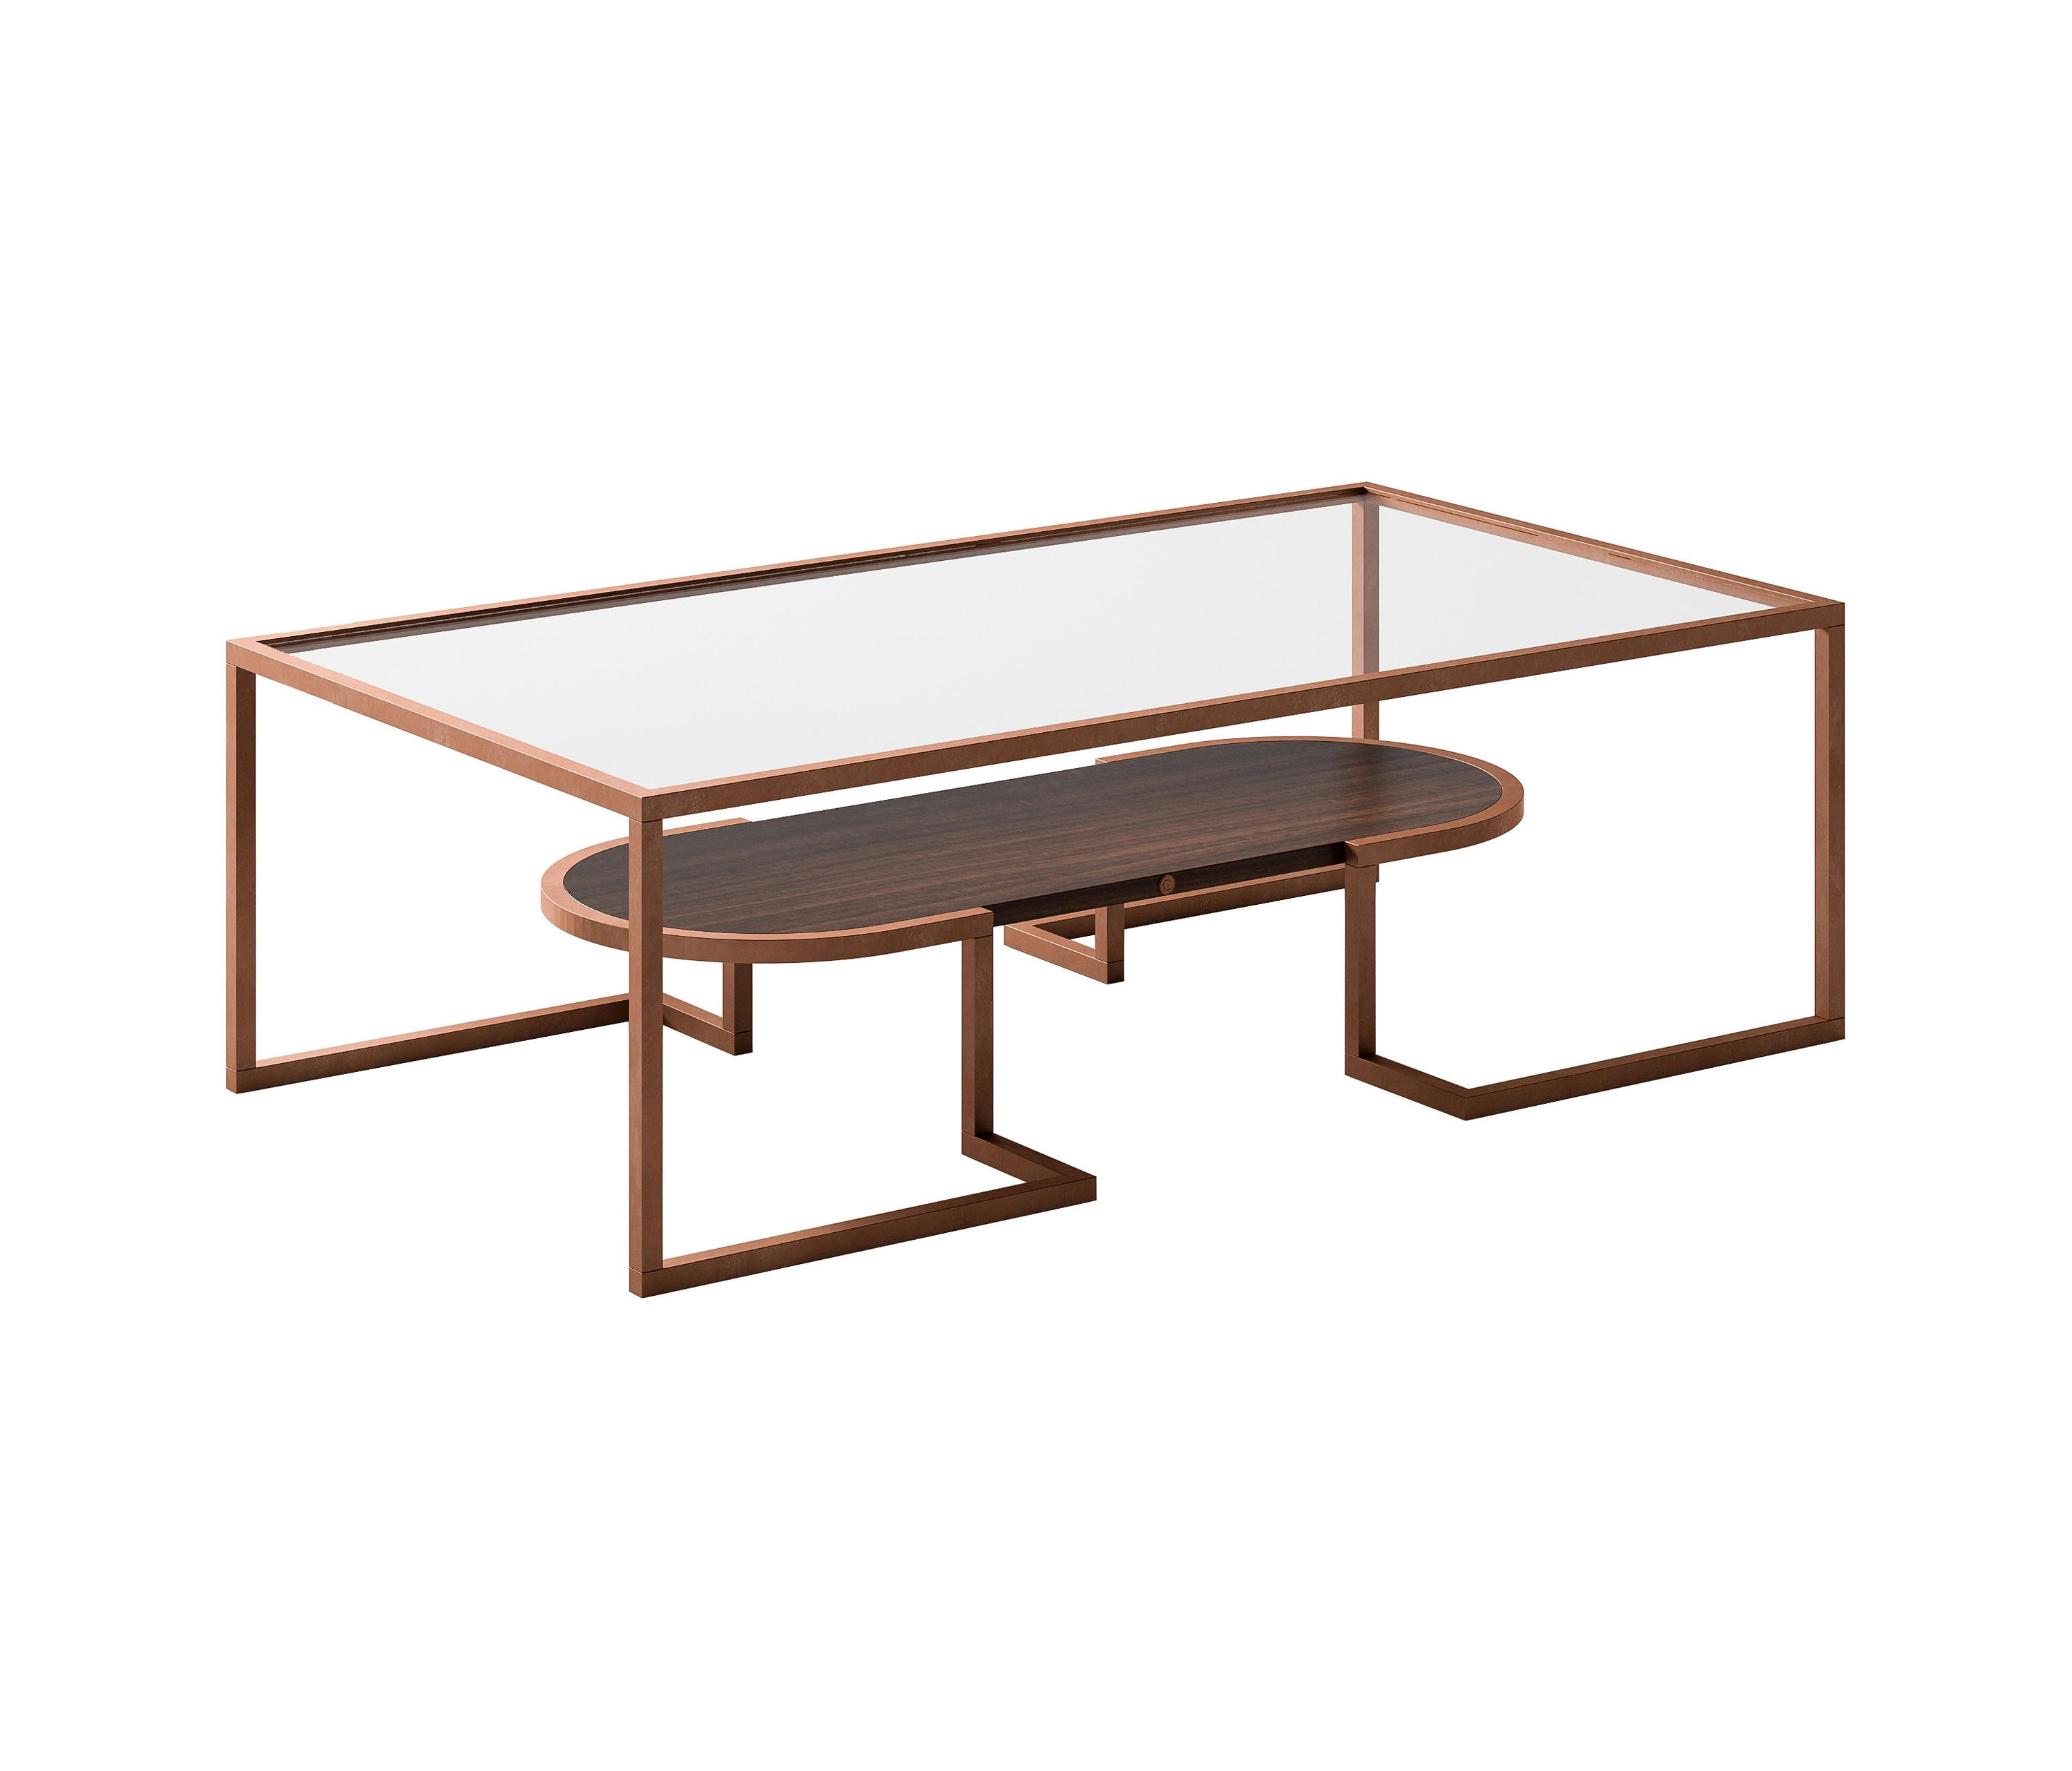 Sesto Senso Coffee Tables From Cipriani Homood Architonic Coffee Table Chair Design Chair [ 2564 x 3000 Pixel ]